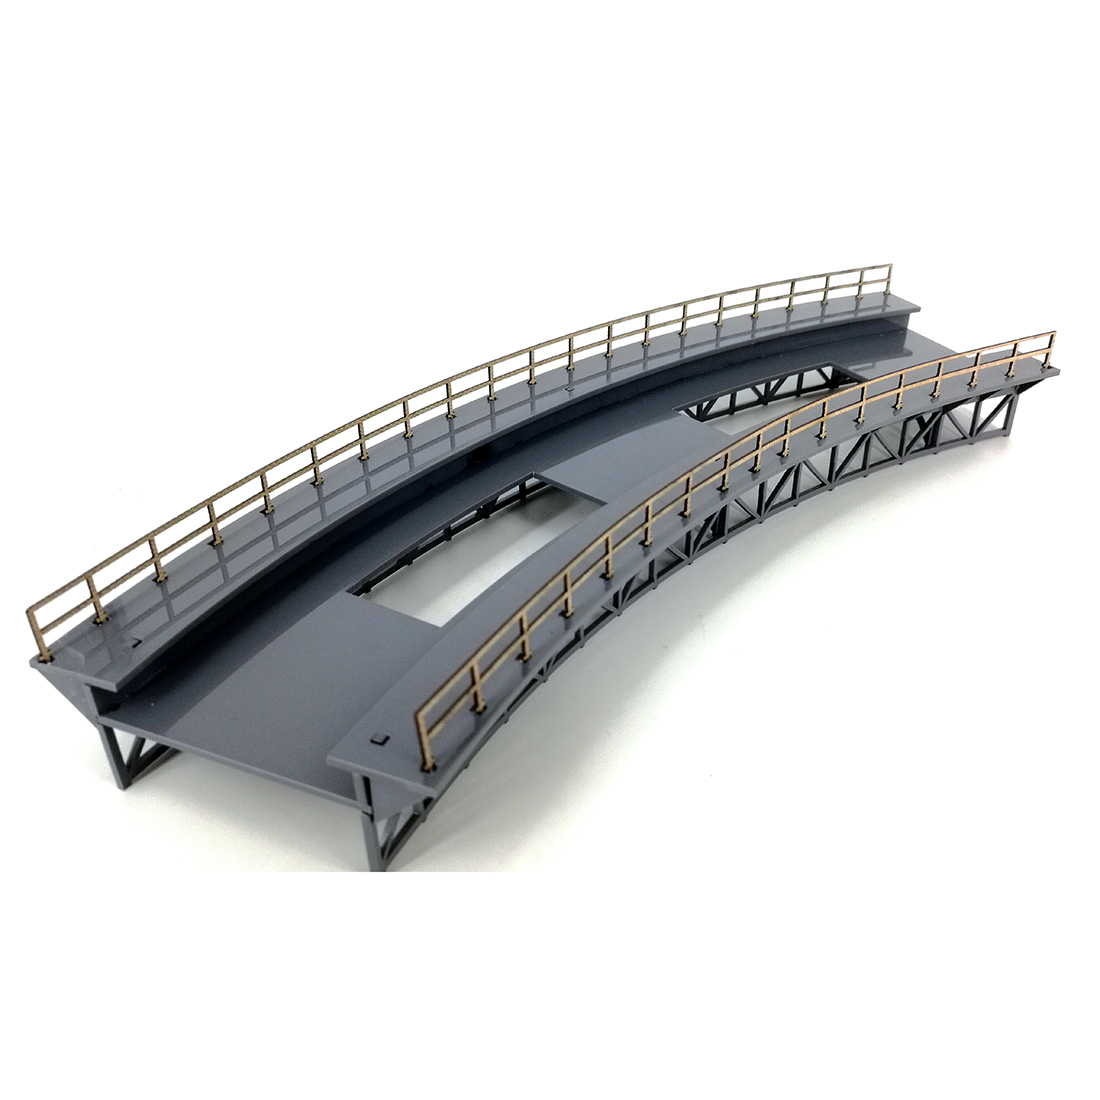 1:87 HO Scale Train Railway Scene Decoration Q4 R4 Curved Railway Bridge Model Without Pier For Sand Table